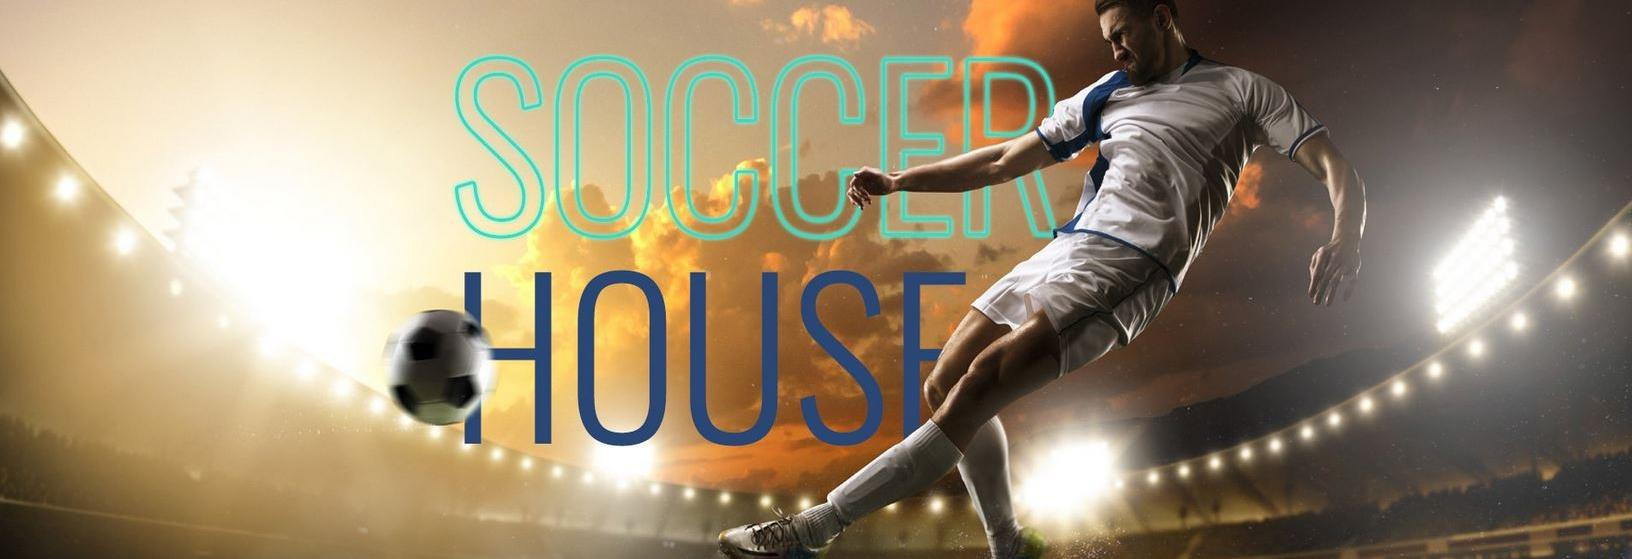 The Soccer House banner West Hempstead, NY